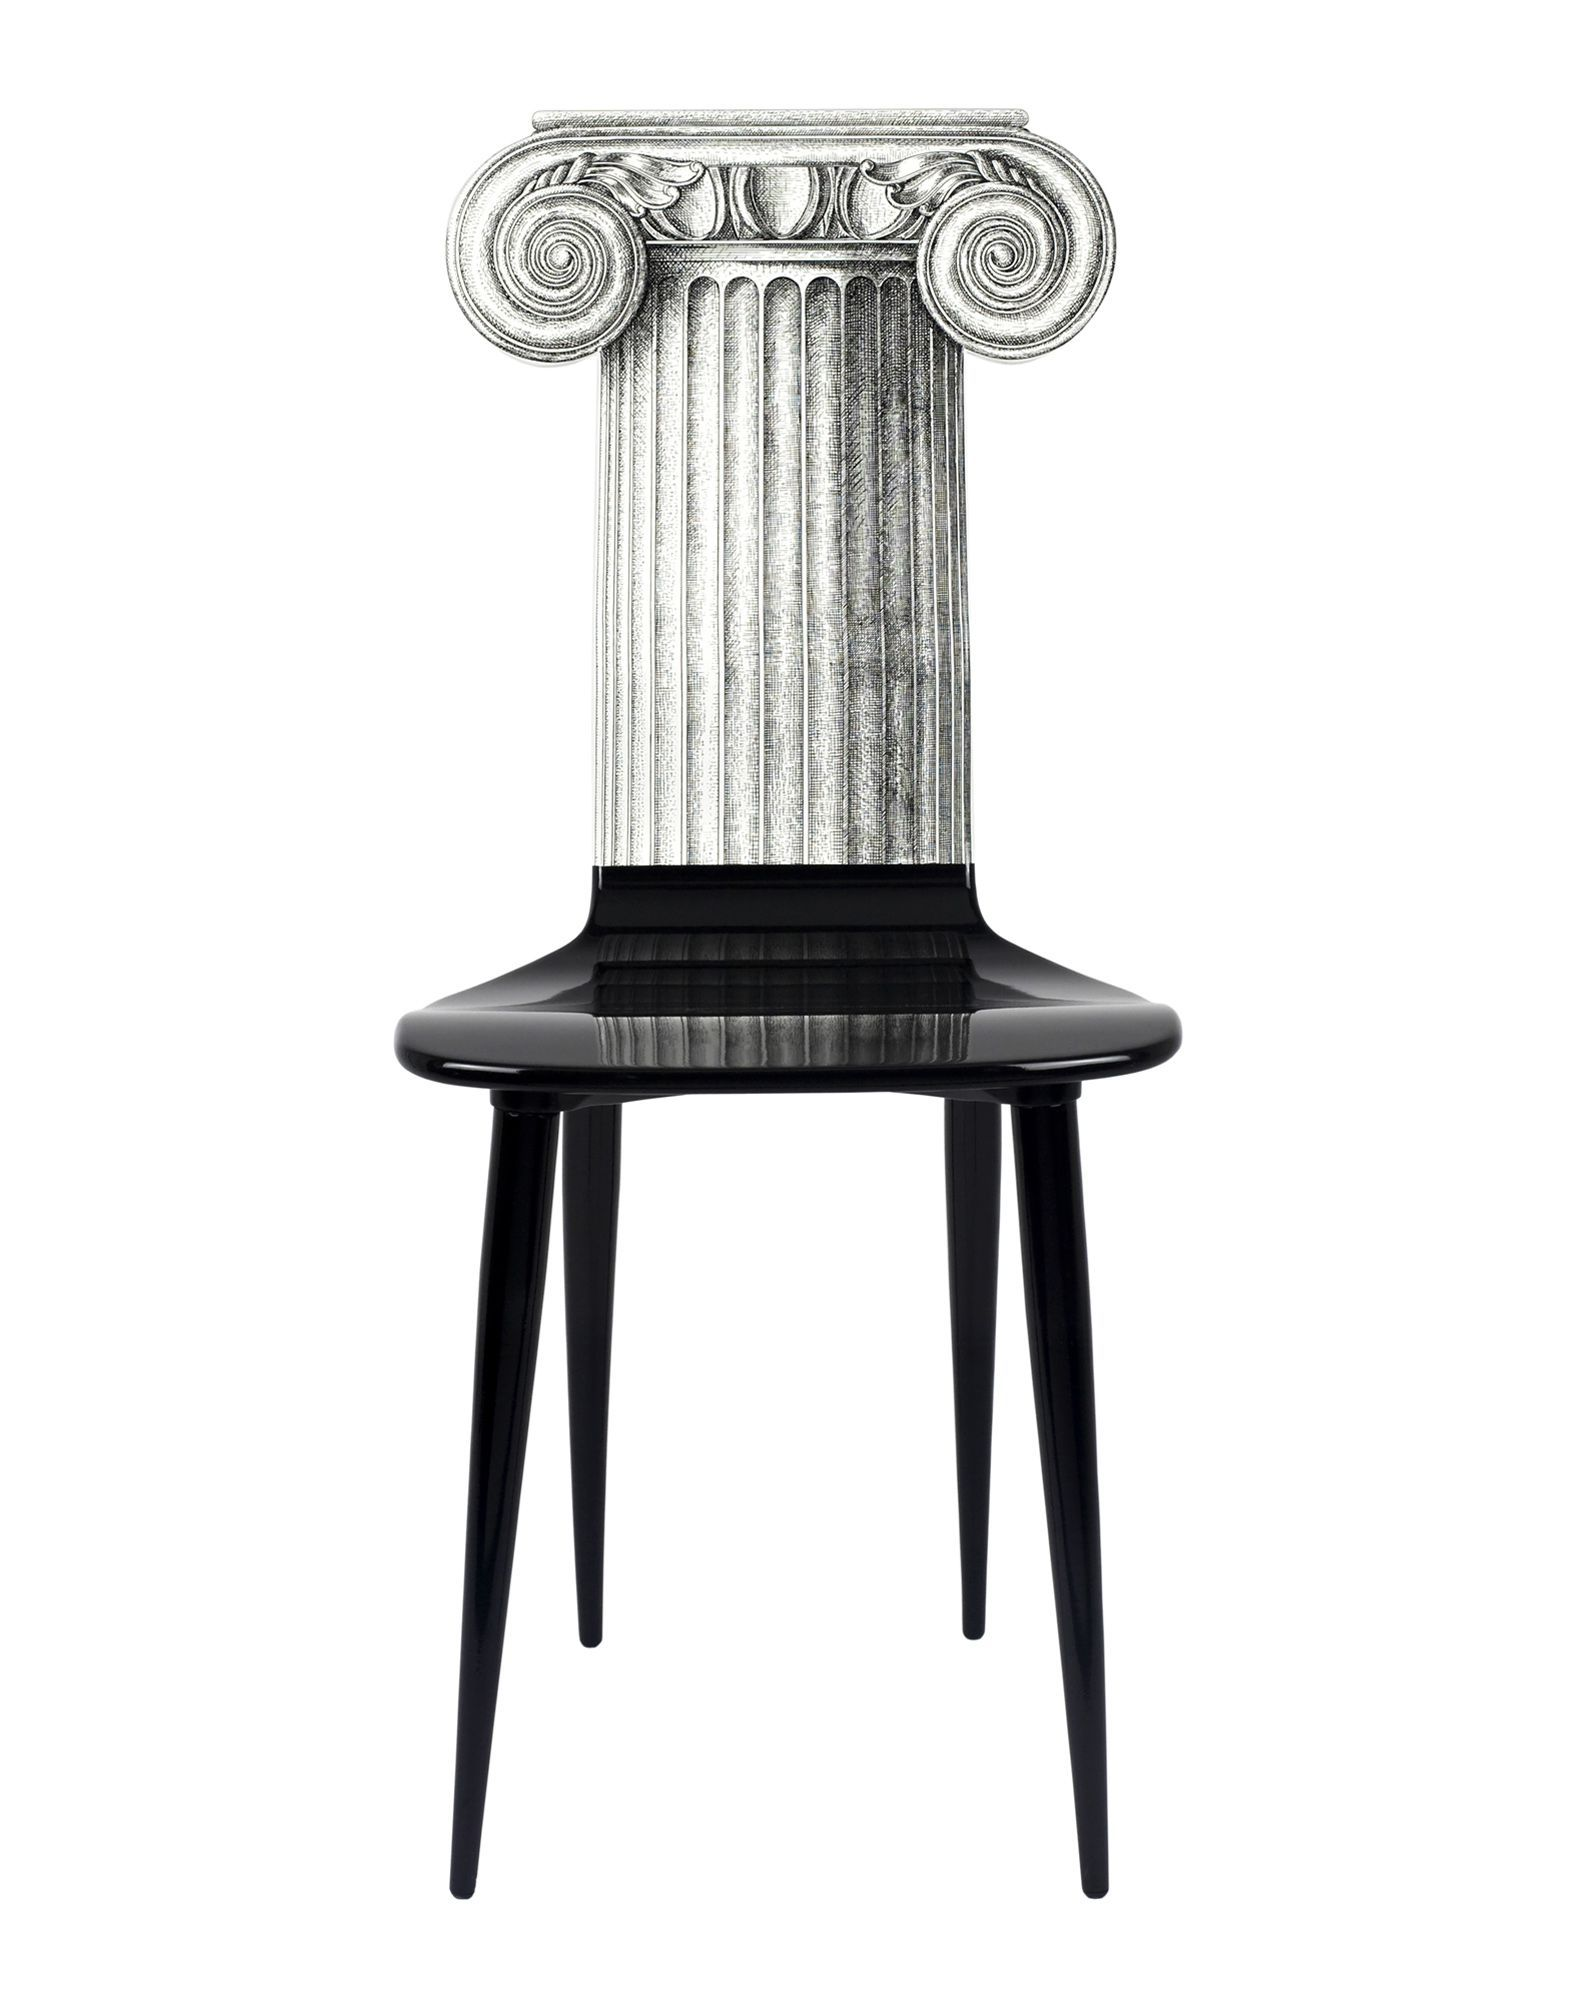 Capitello Ionico Black Wood Chair From Fornasetti Featuring A Contrasting  Grey Ancient Greek Column Design As The Back Rest And Spike Shaped Legs.